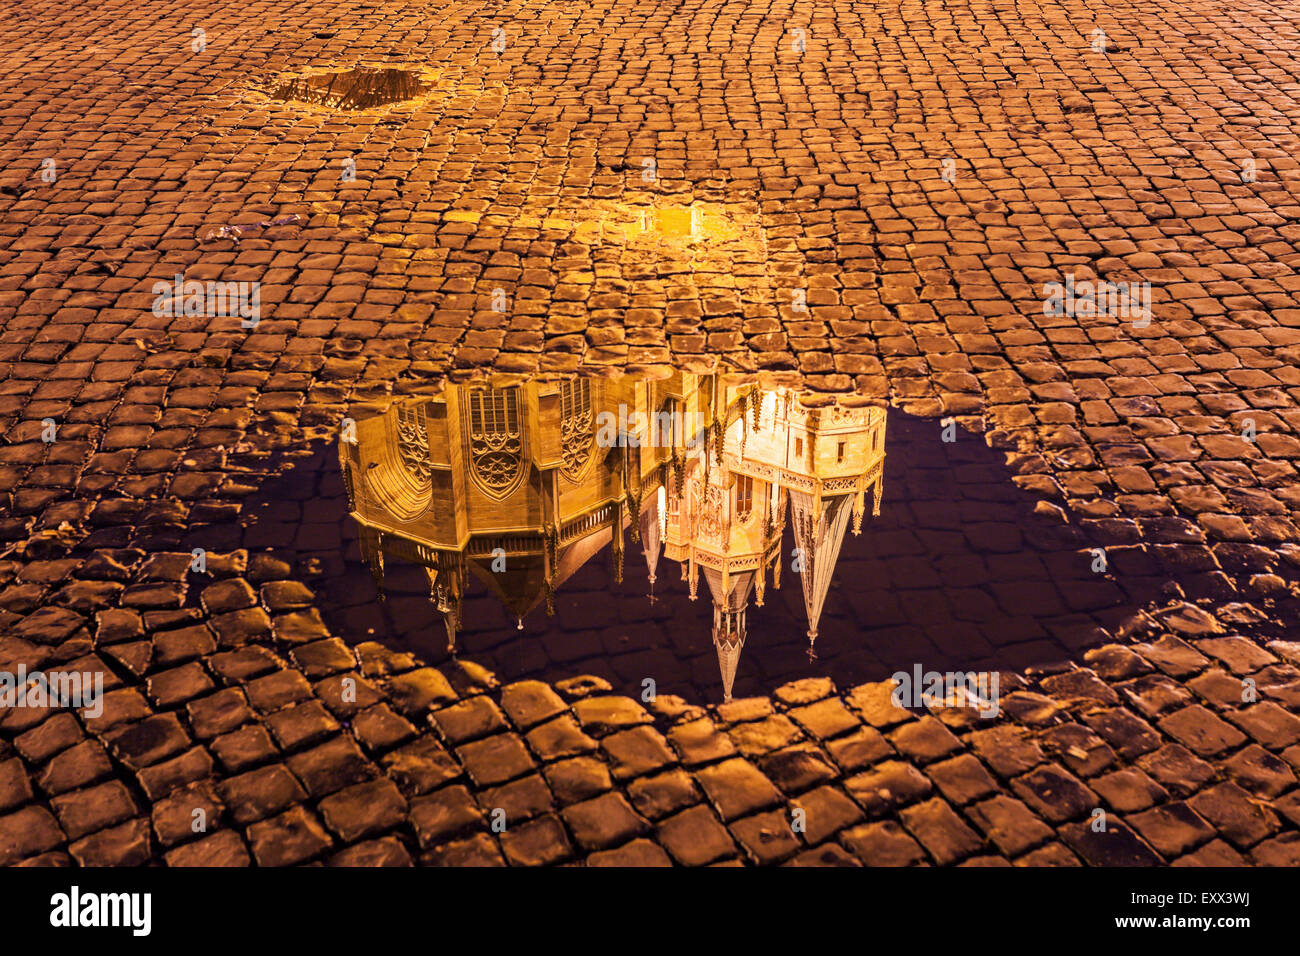 Reflection of Erfurt Cathedral in puddle - Stock Image